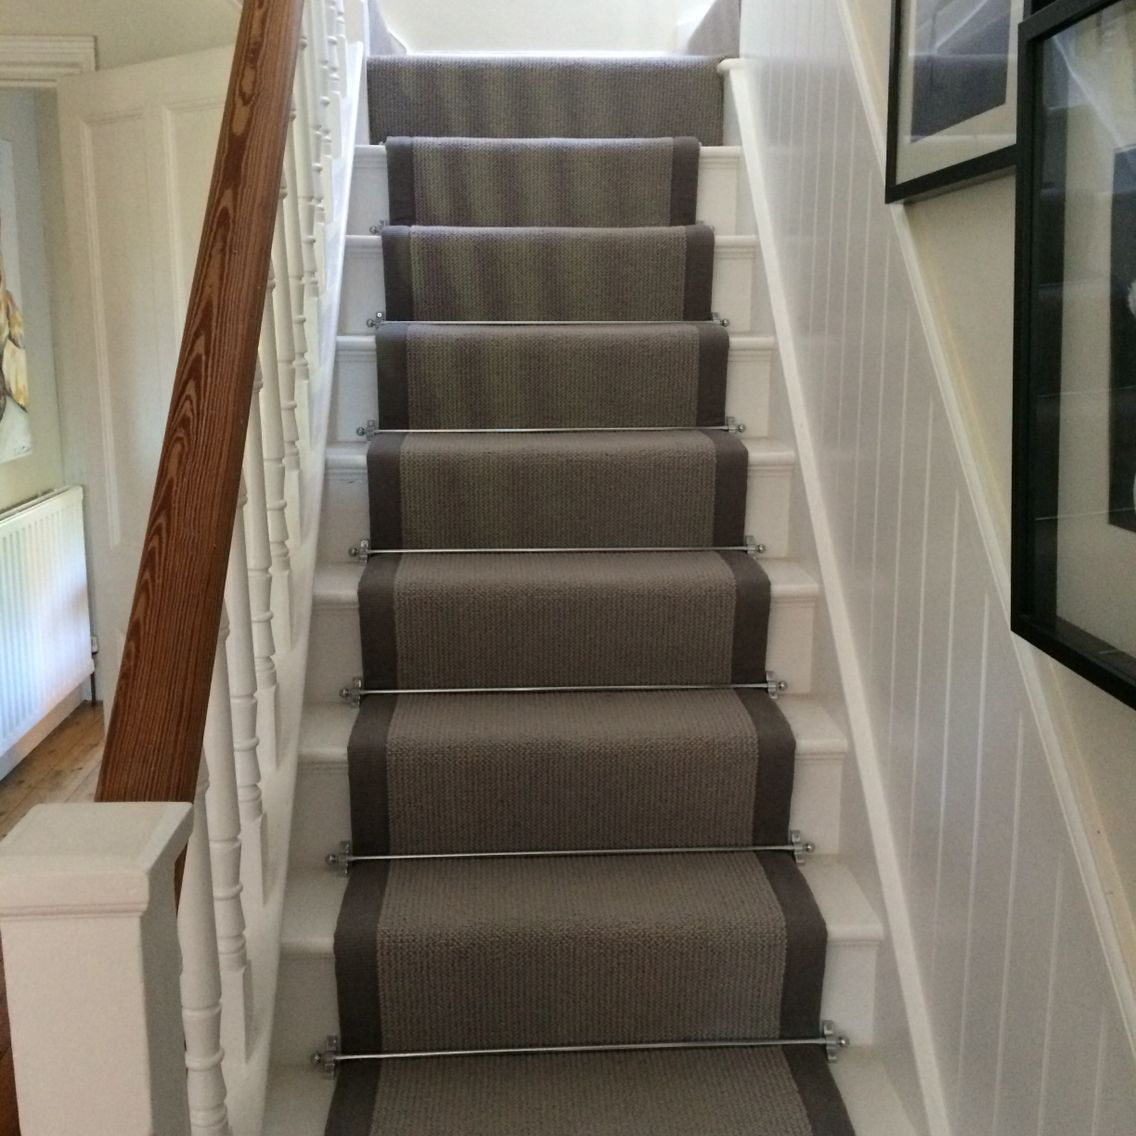 Pictures Of Beautifully Decorated Homes Pennells Carpets Grey Stair Runner With Chrome Bars